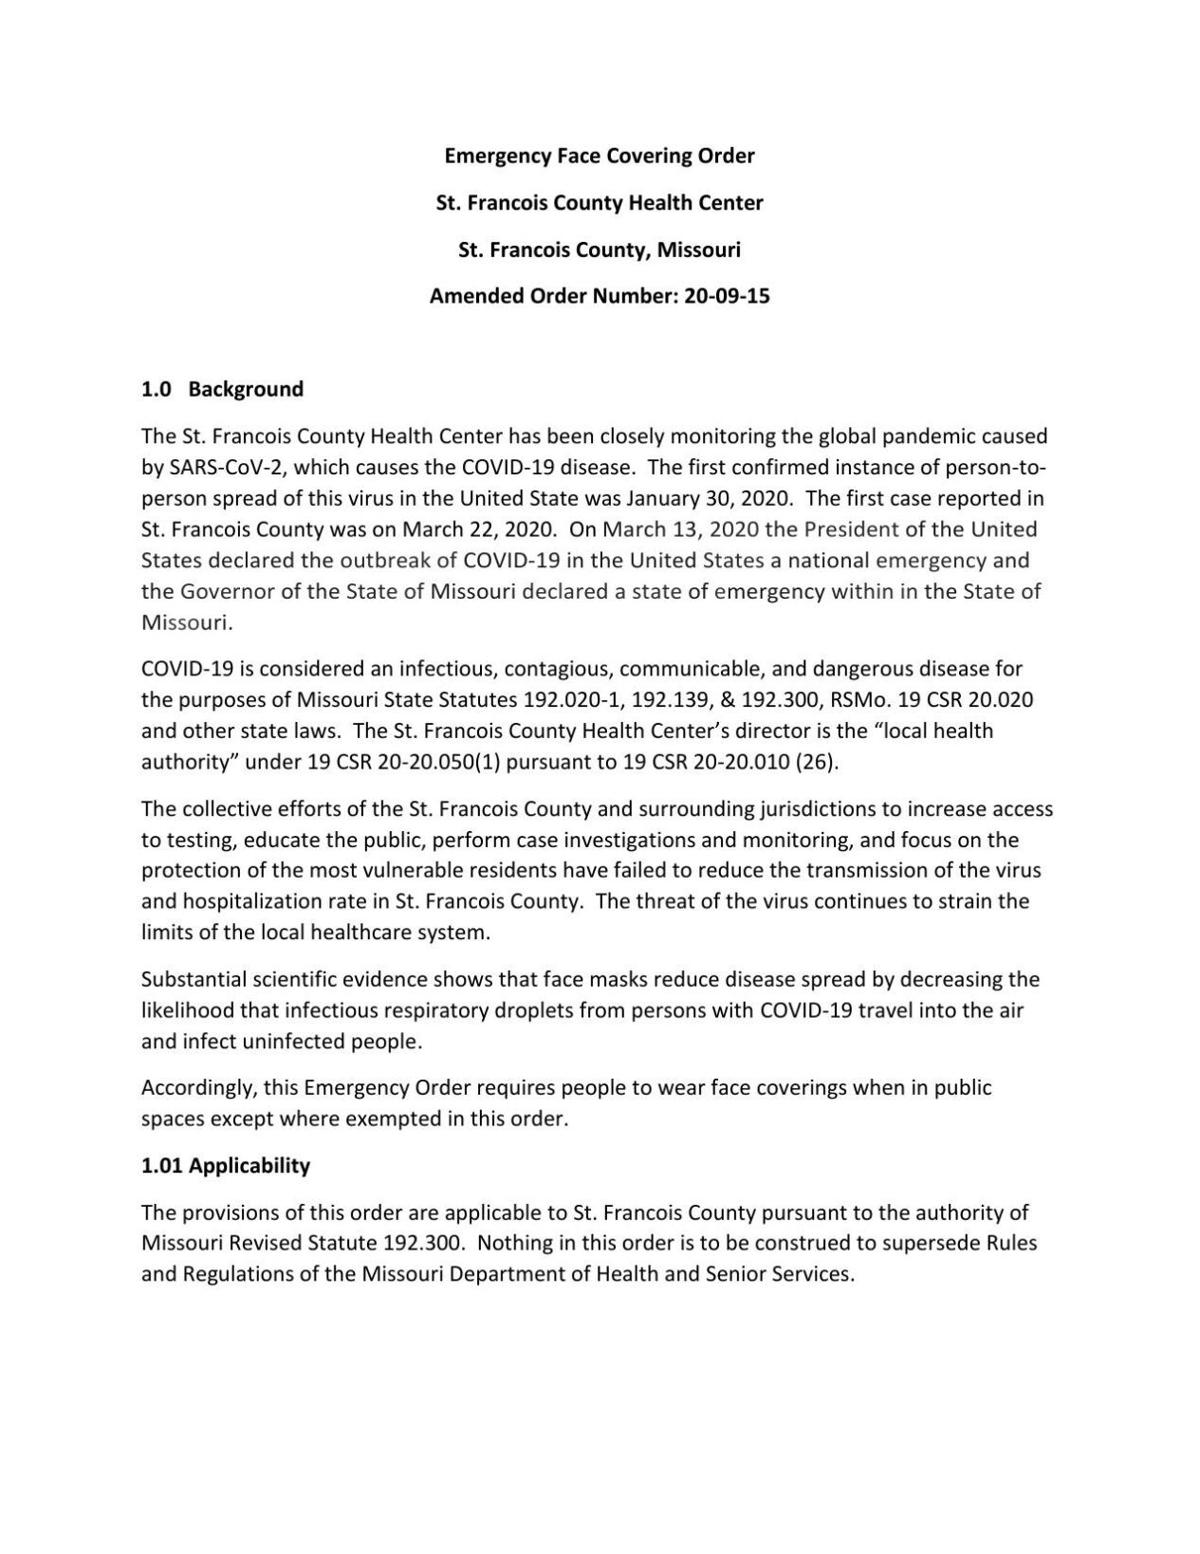 Amended-Emergency-Face-Covering-Order-DRAFT.pdf